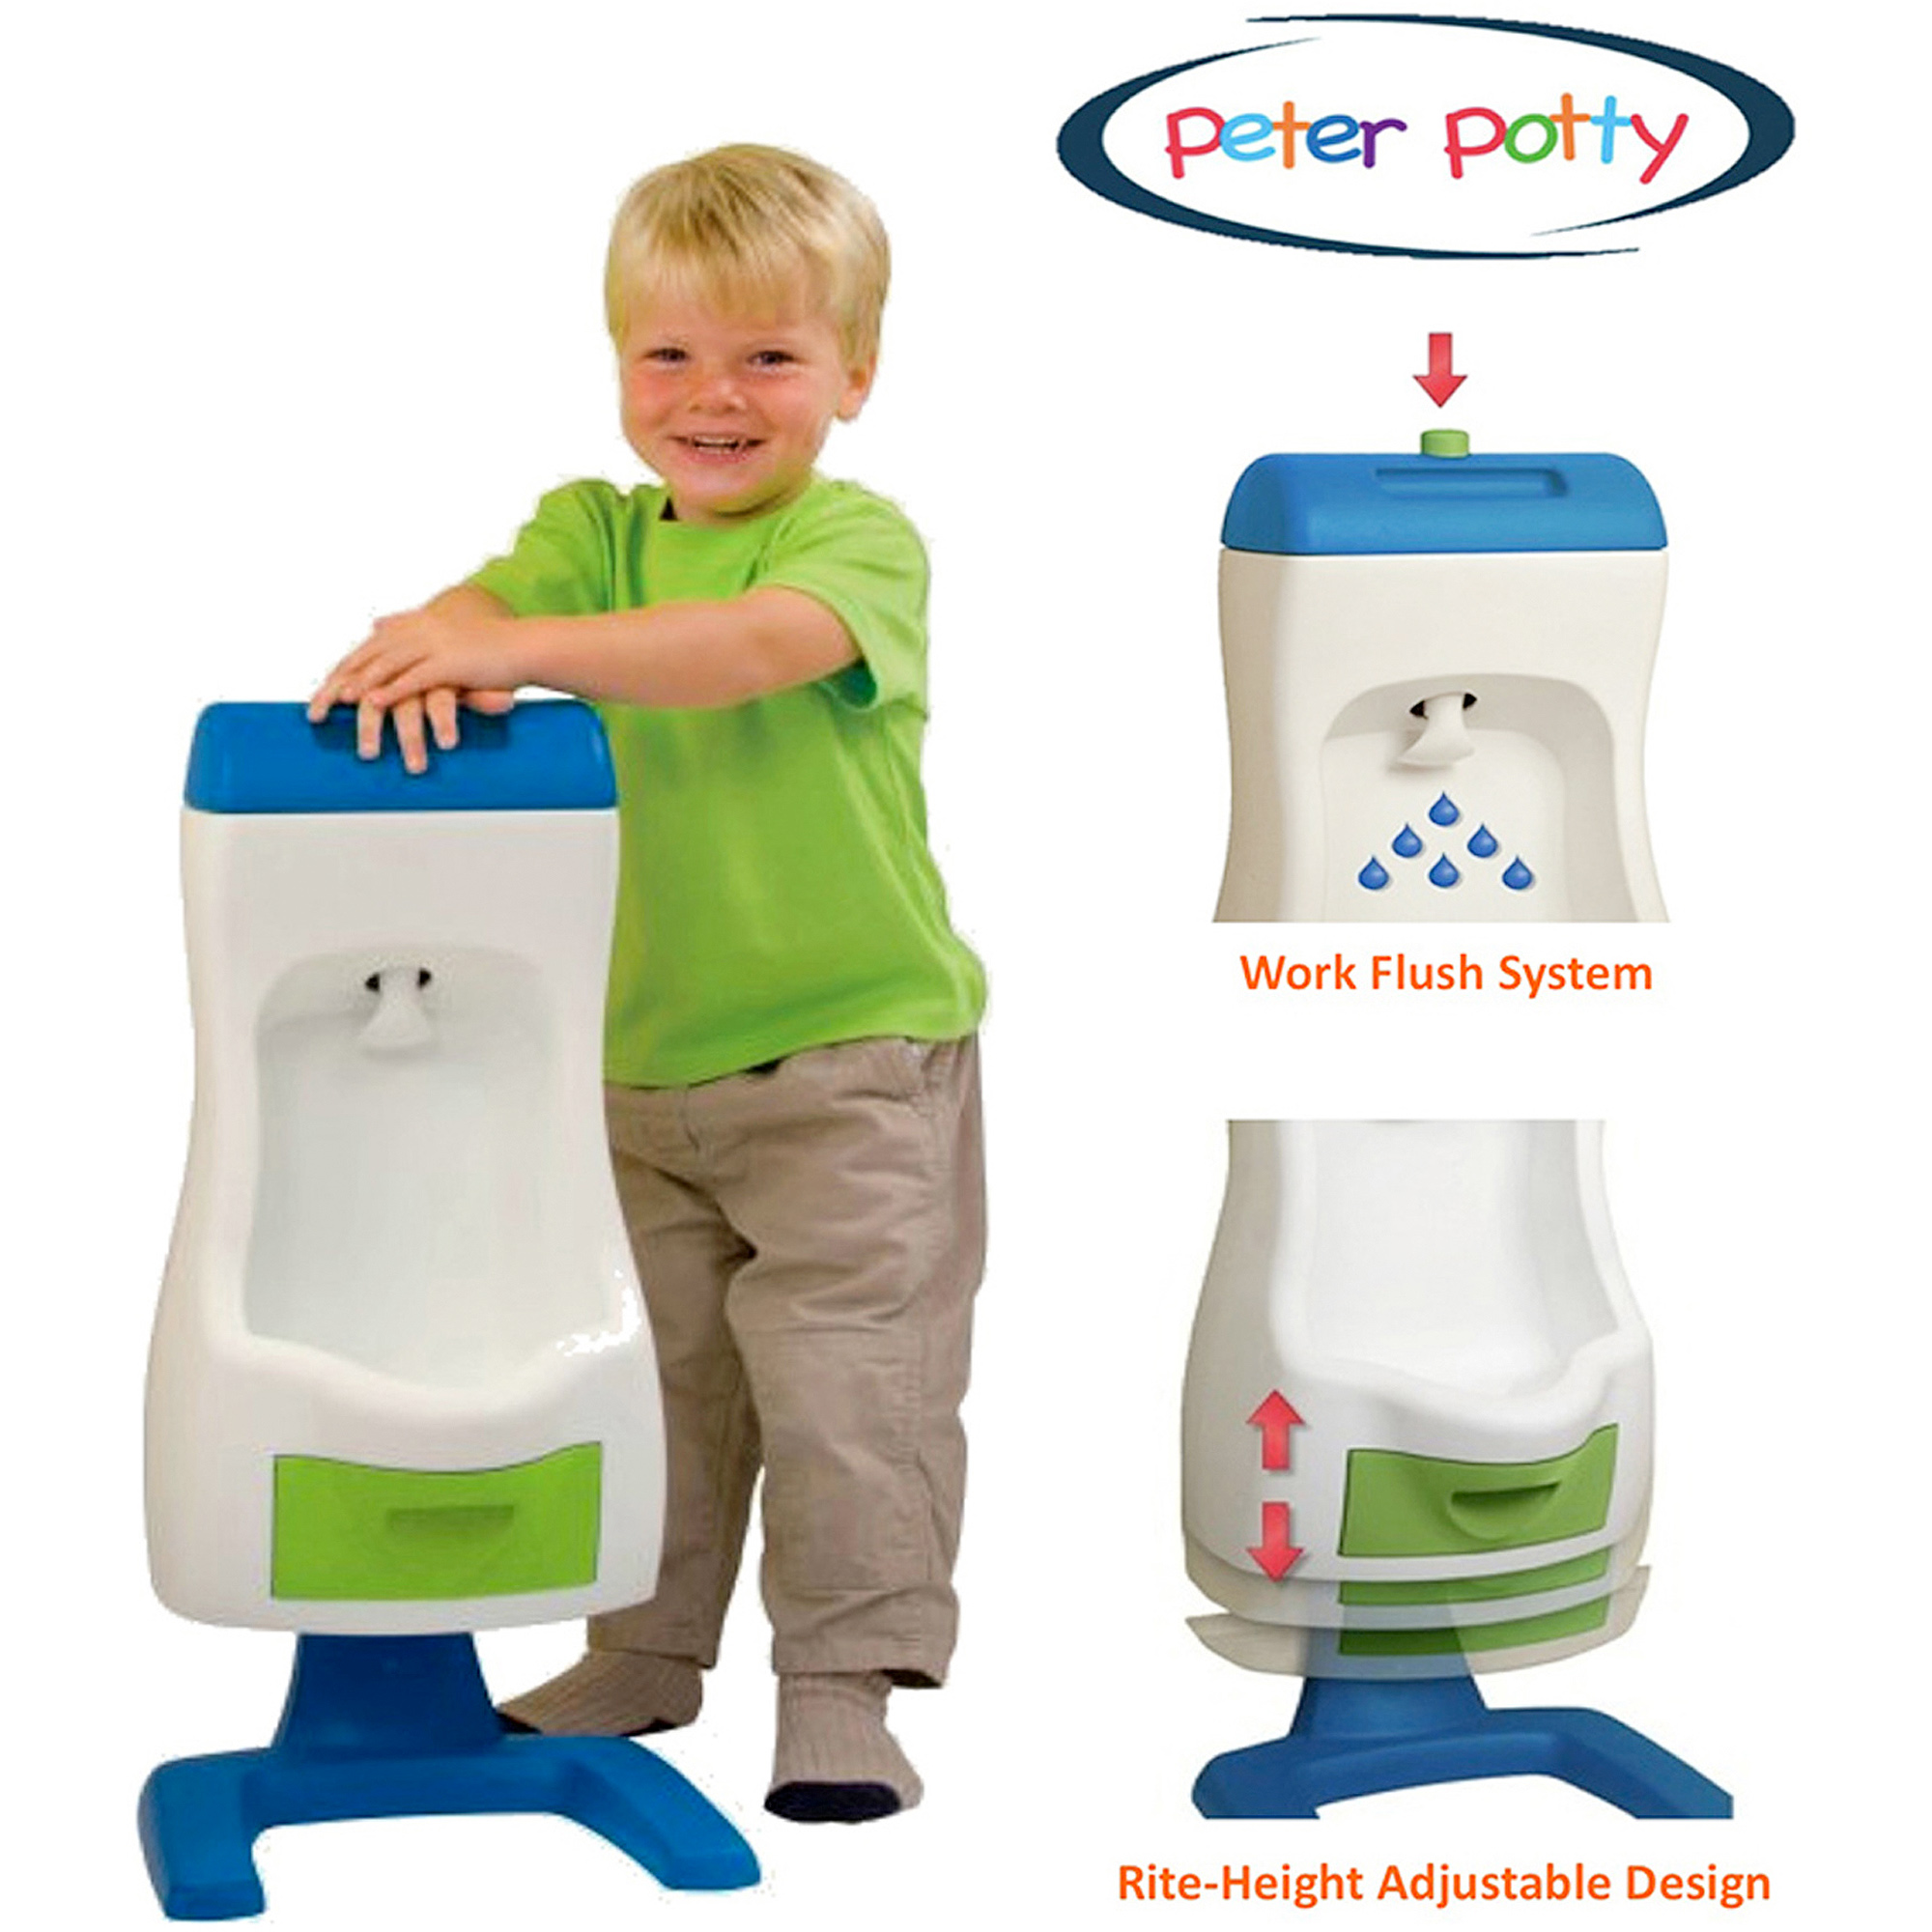 Peter Potty Flushable Toddler Urinal by Grow%27n Up